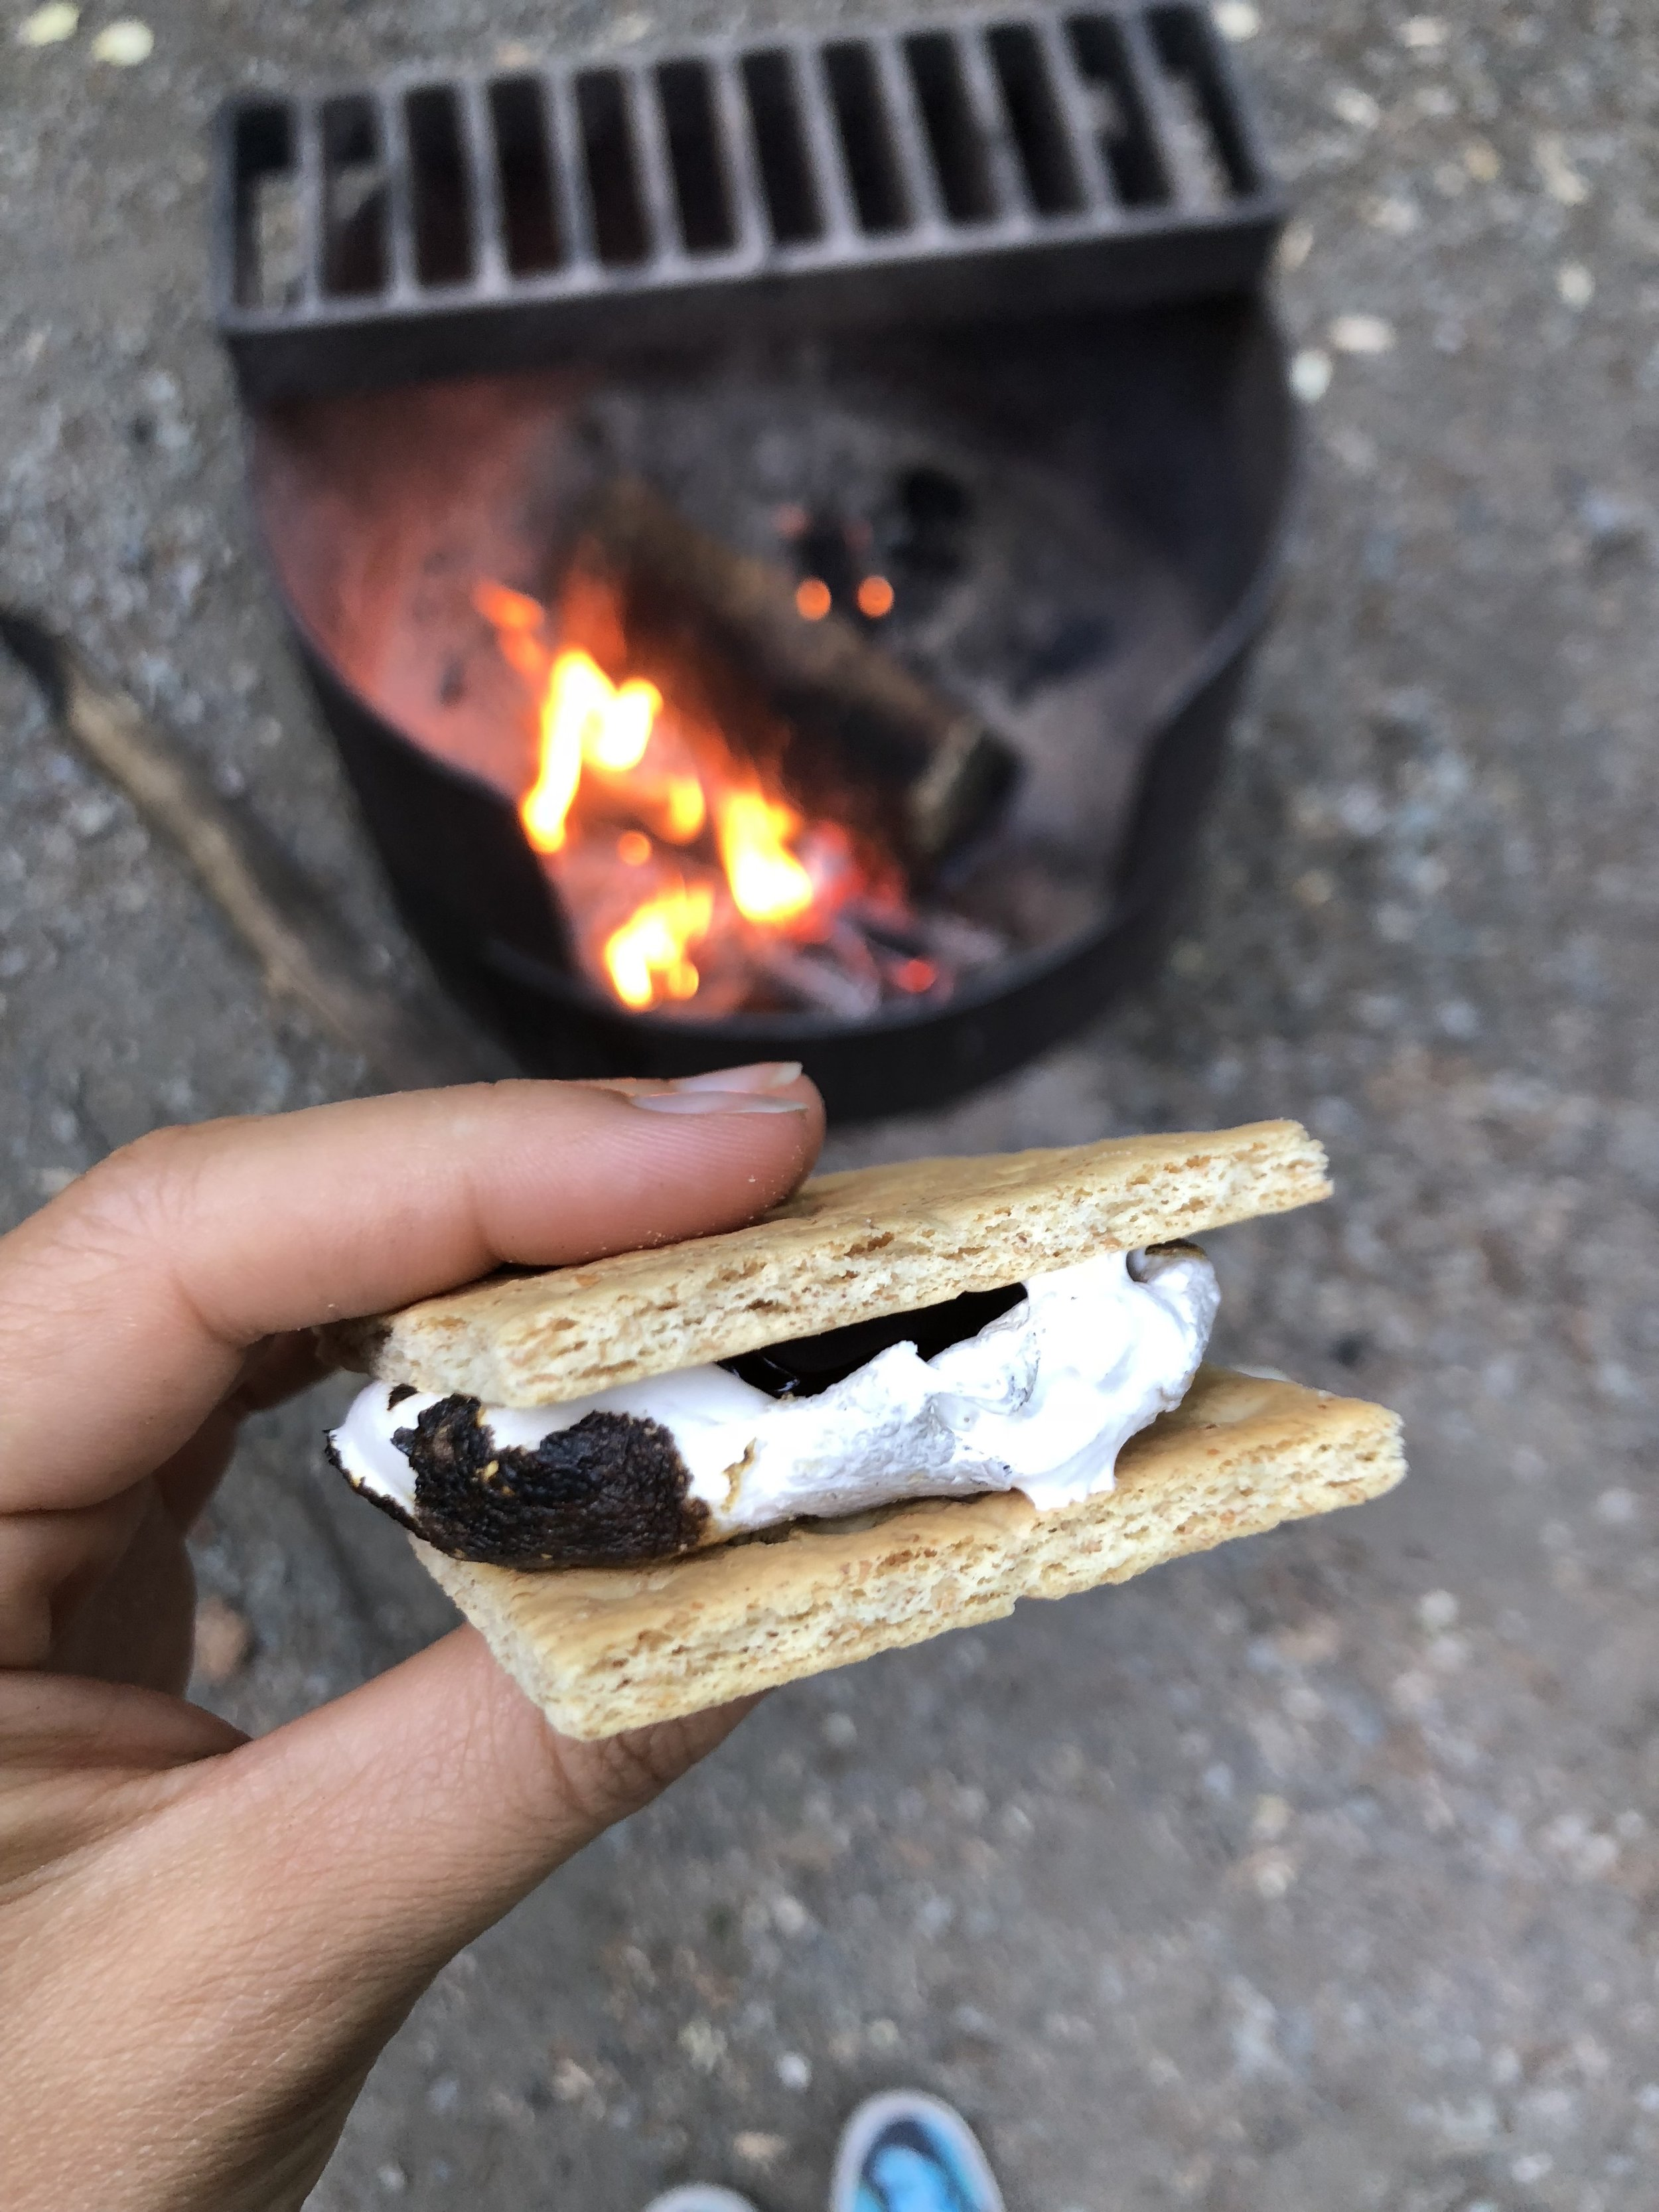 In case you didn't know, Dandies marshmallows are vegan